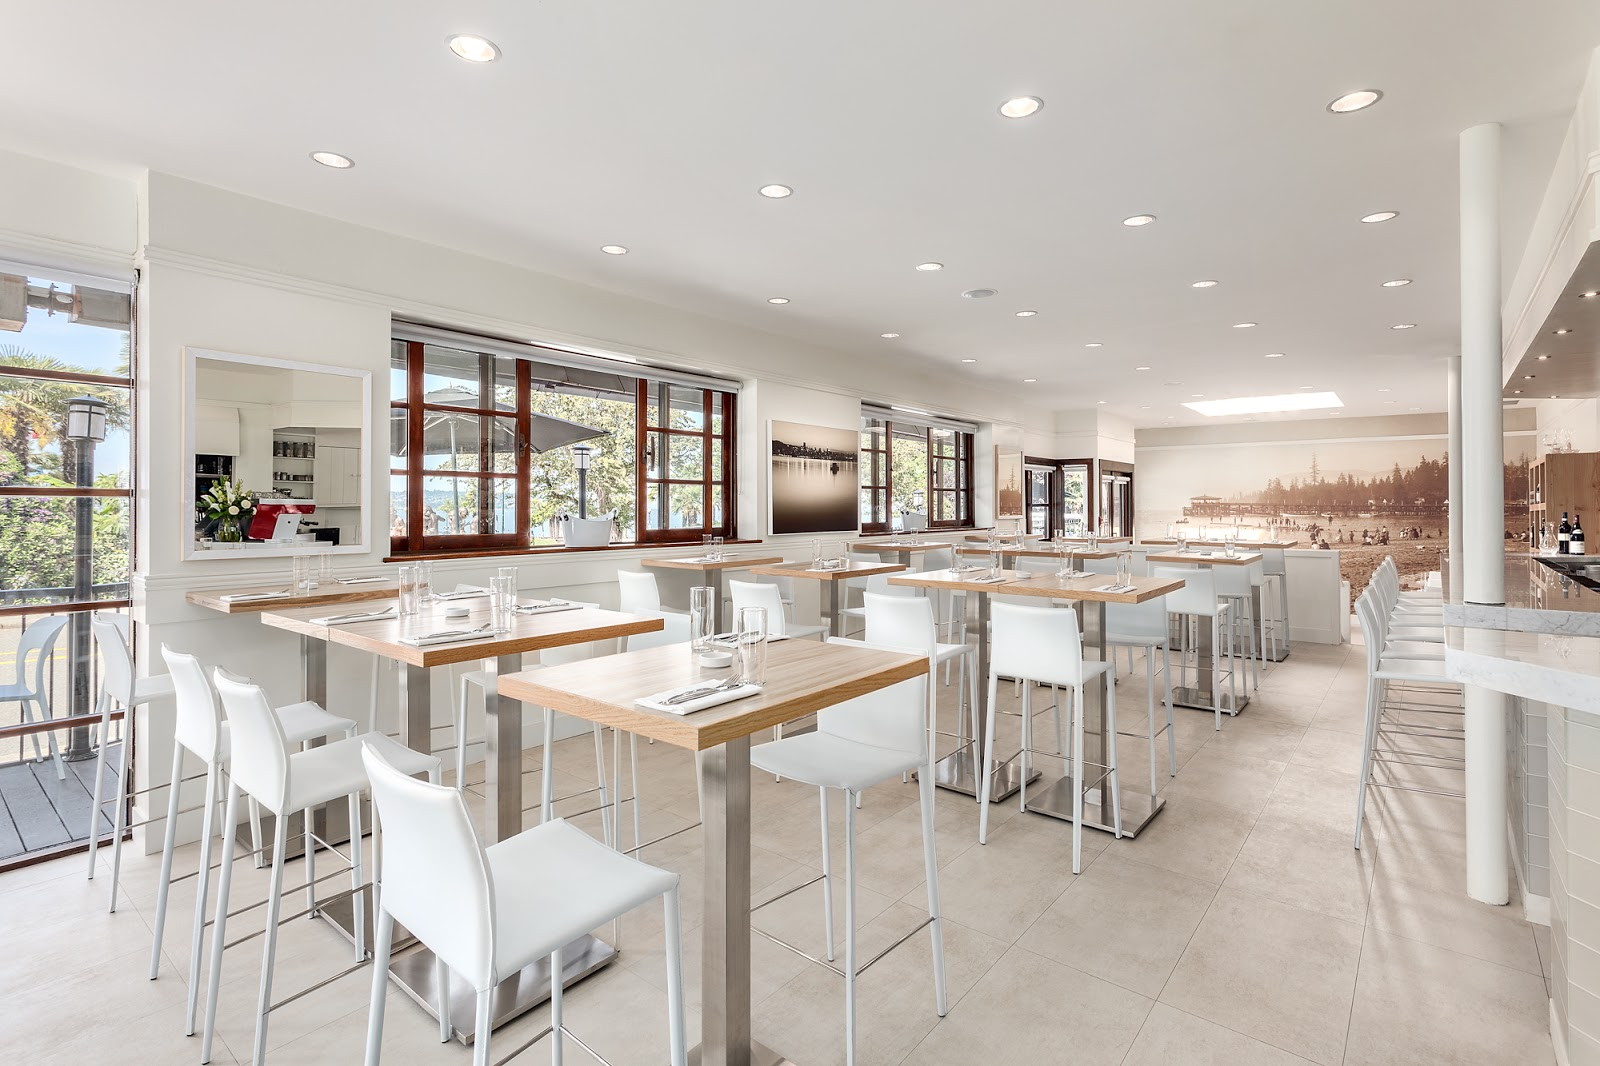 Now Featuring A Sleek And Contemporary Interior, Thereu0027s Also A Heated Patio  For Outdoor Dining. The Executive Chef Is Scott Korzack, A Culinary Alum Of  ...